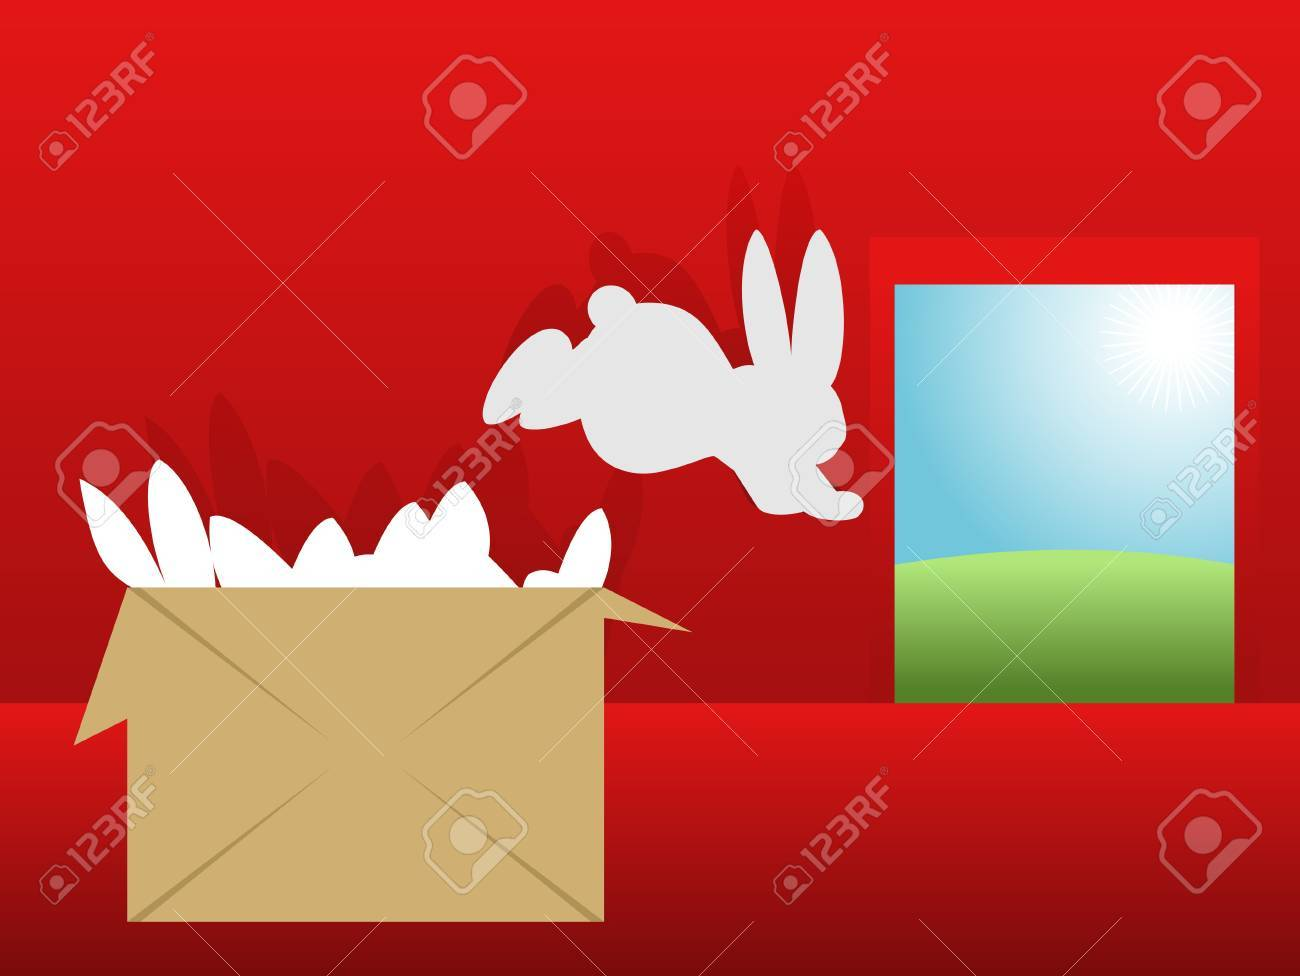 The rabbit escapes on freedom Stock Vector - 15520115